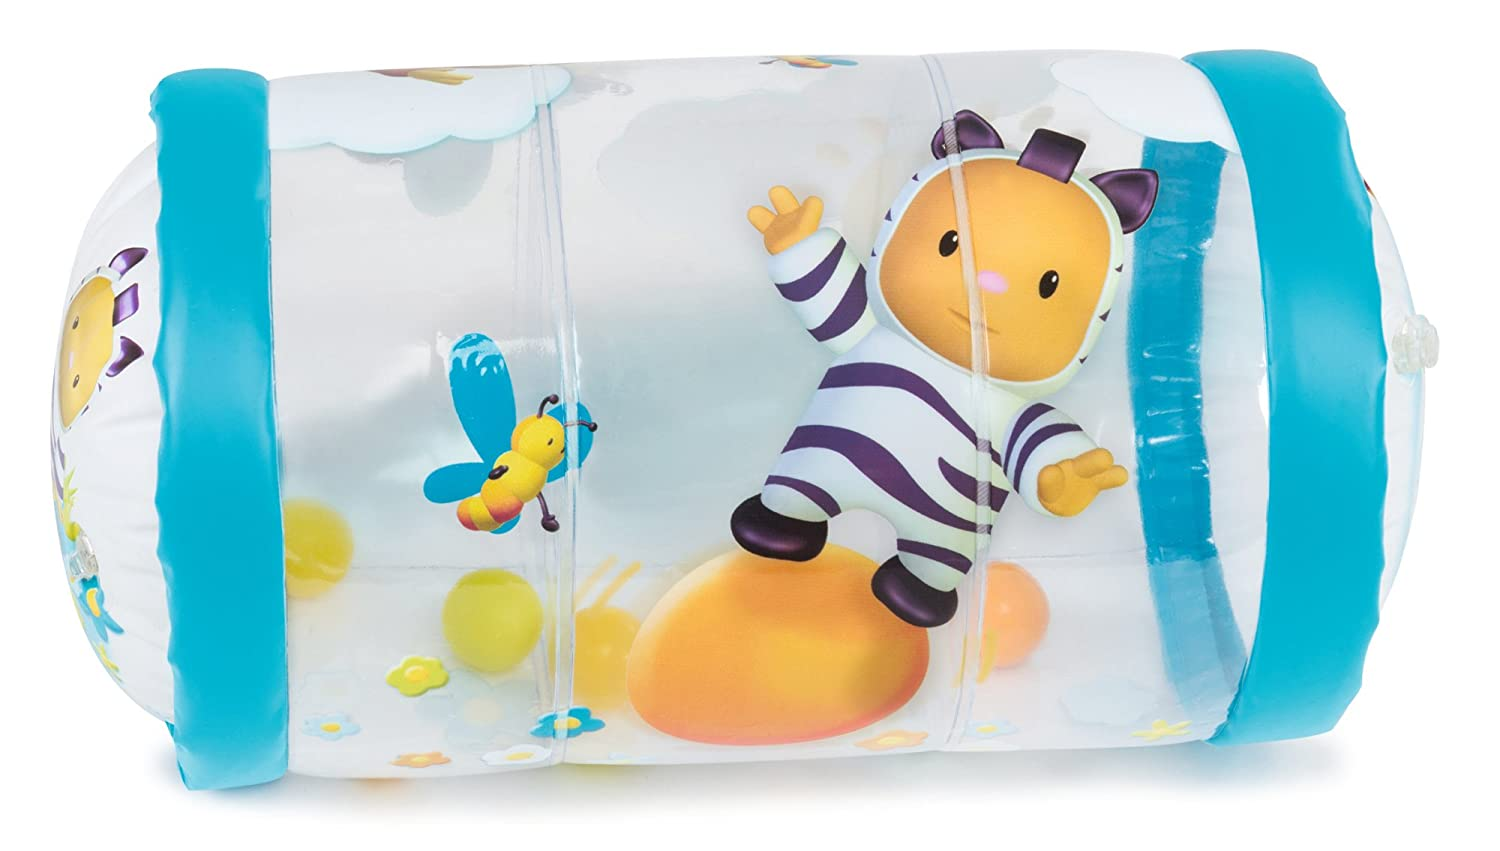 Smoby 110300 - Cotoons Spielrolle, blau